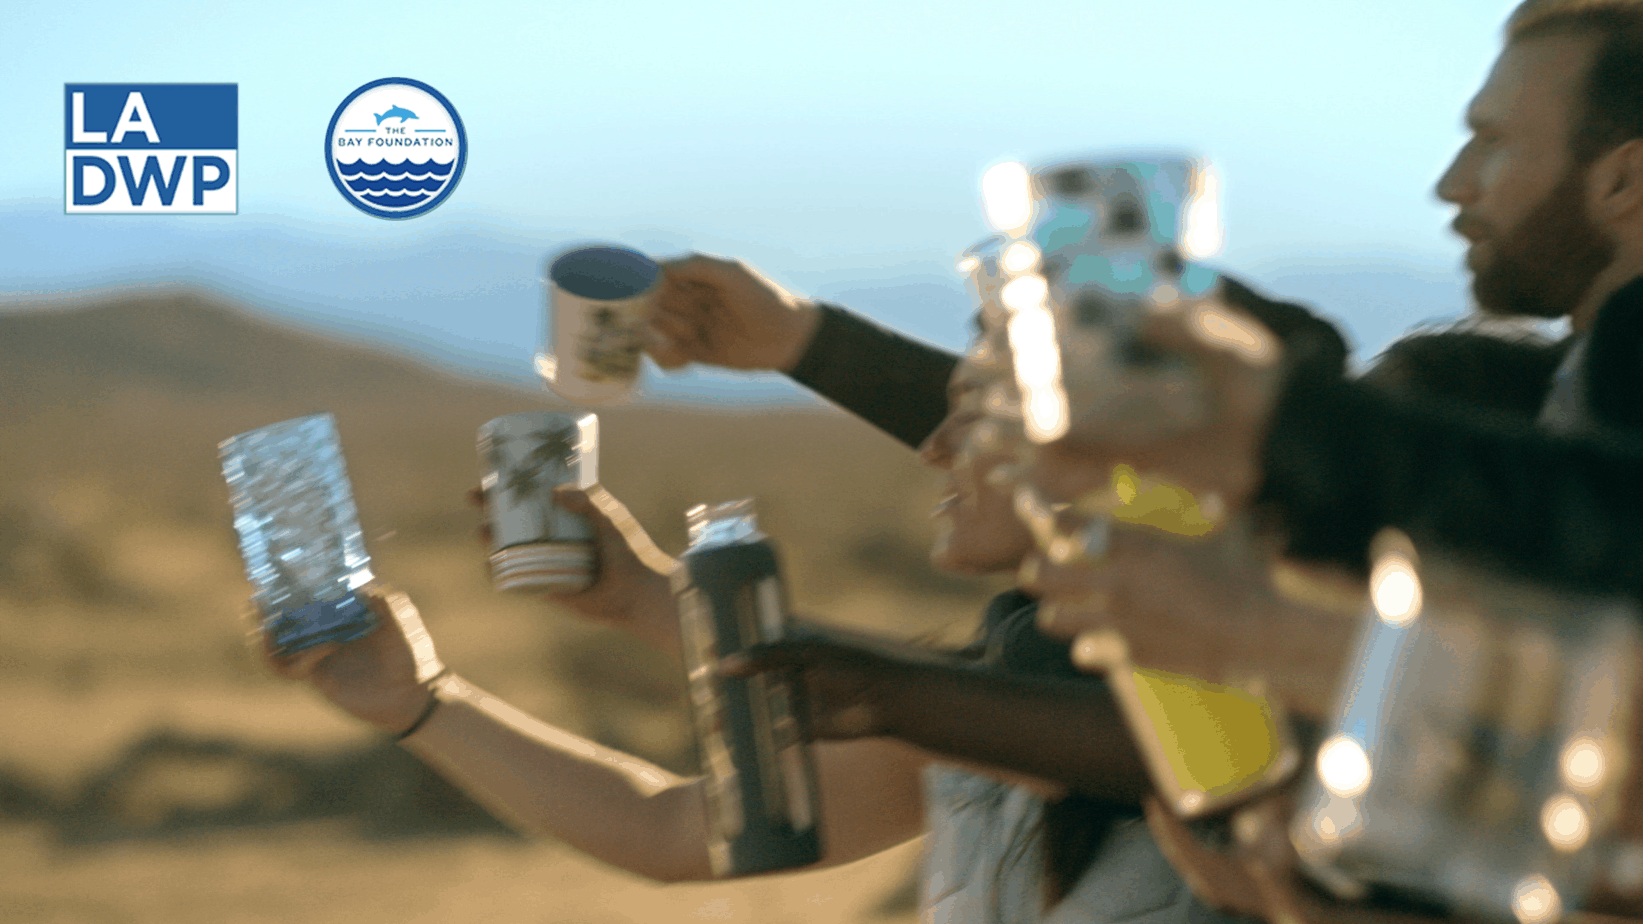 Desert Delivery, a W3 award winning PSA for LADWP and The Bay Foundation